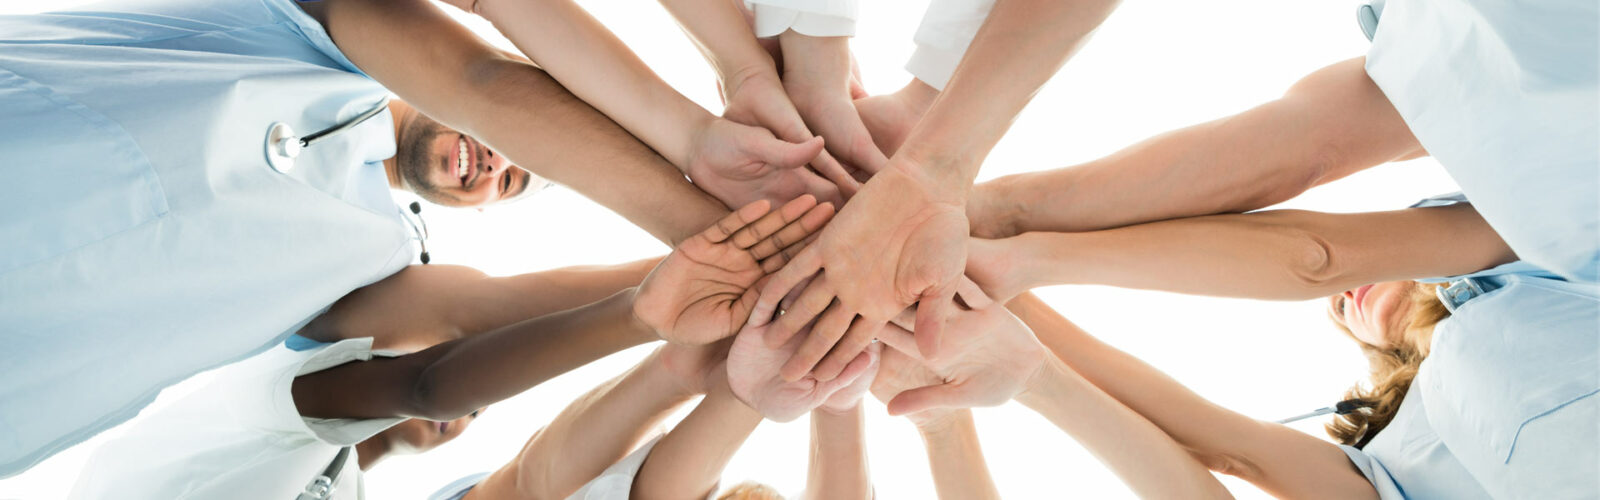 showing unity with hands on each other